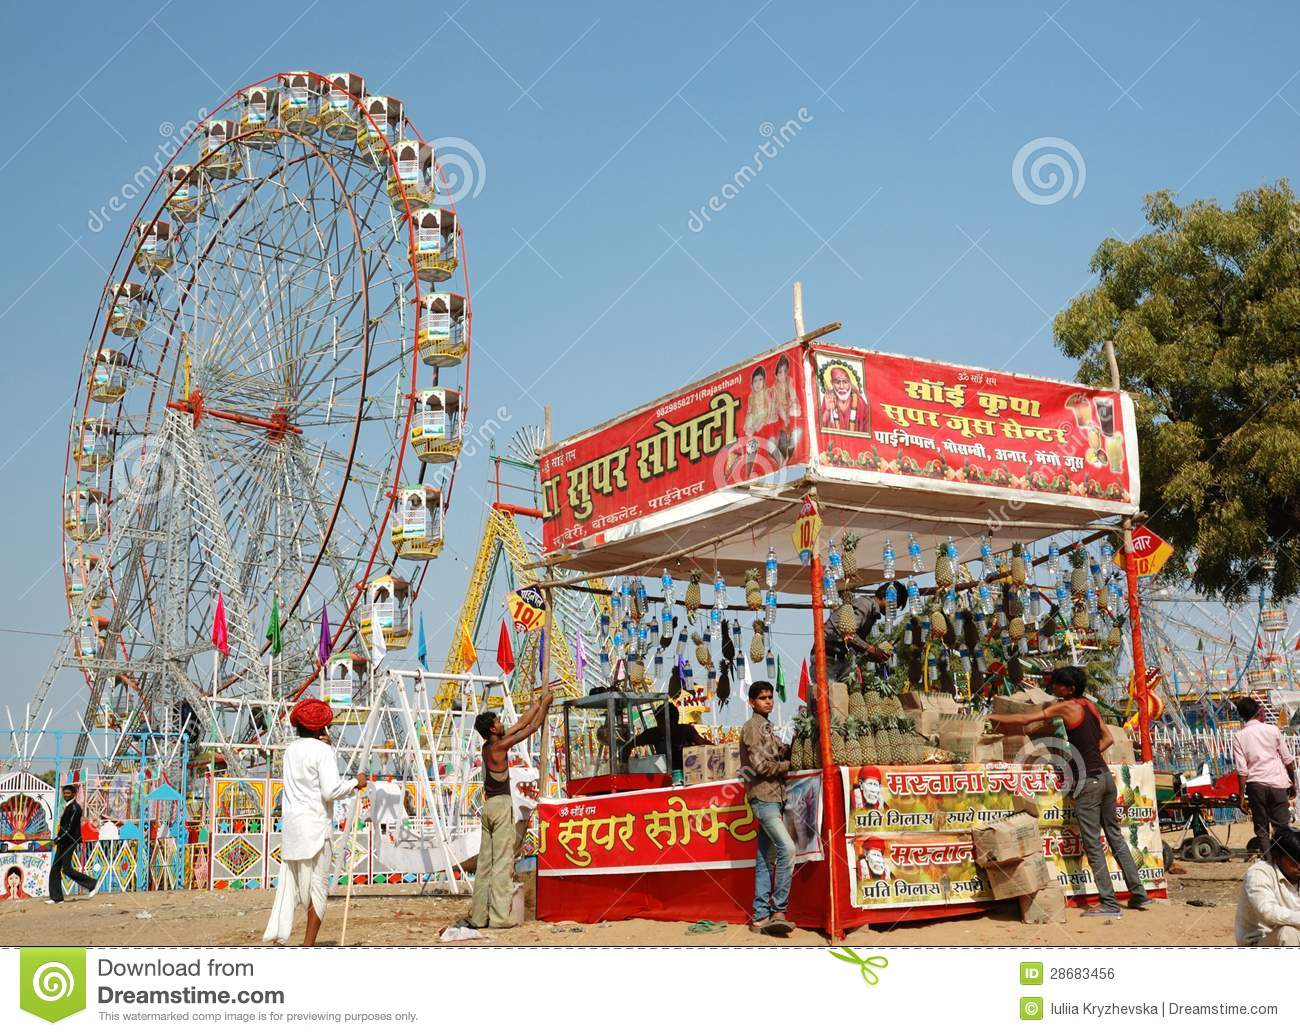 fun at the amusement park essay Amusement park and thrillopher essay  jury and amusement park essay example  their number one goal is to have fun and the most exciting time of their life .